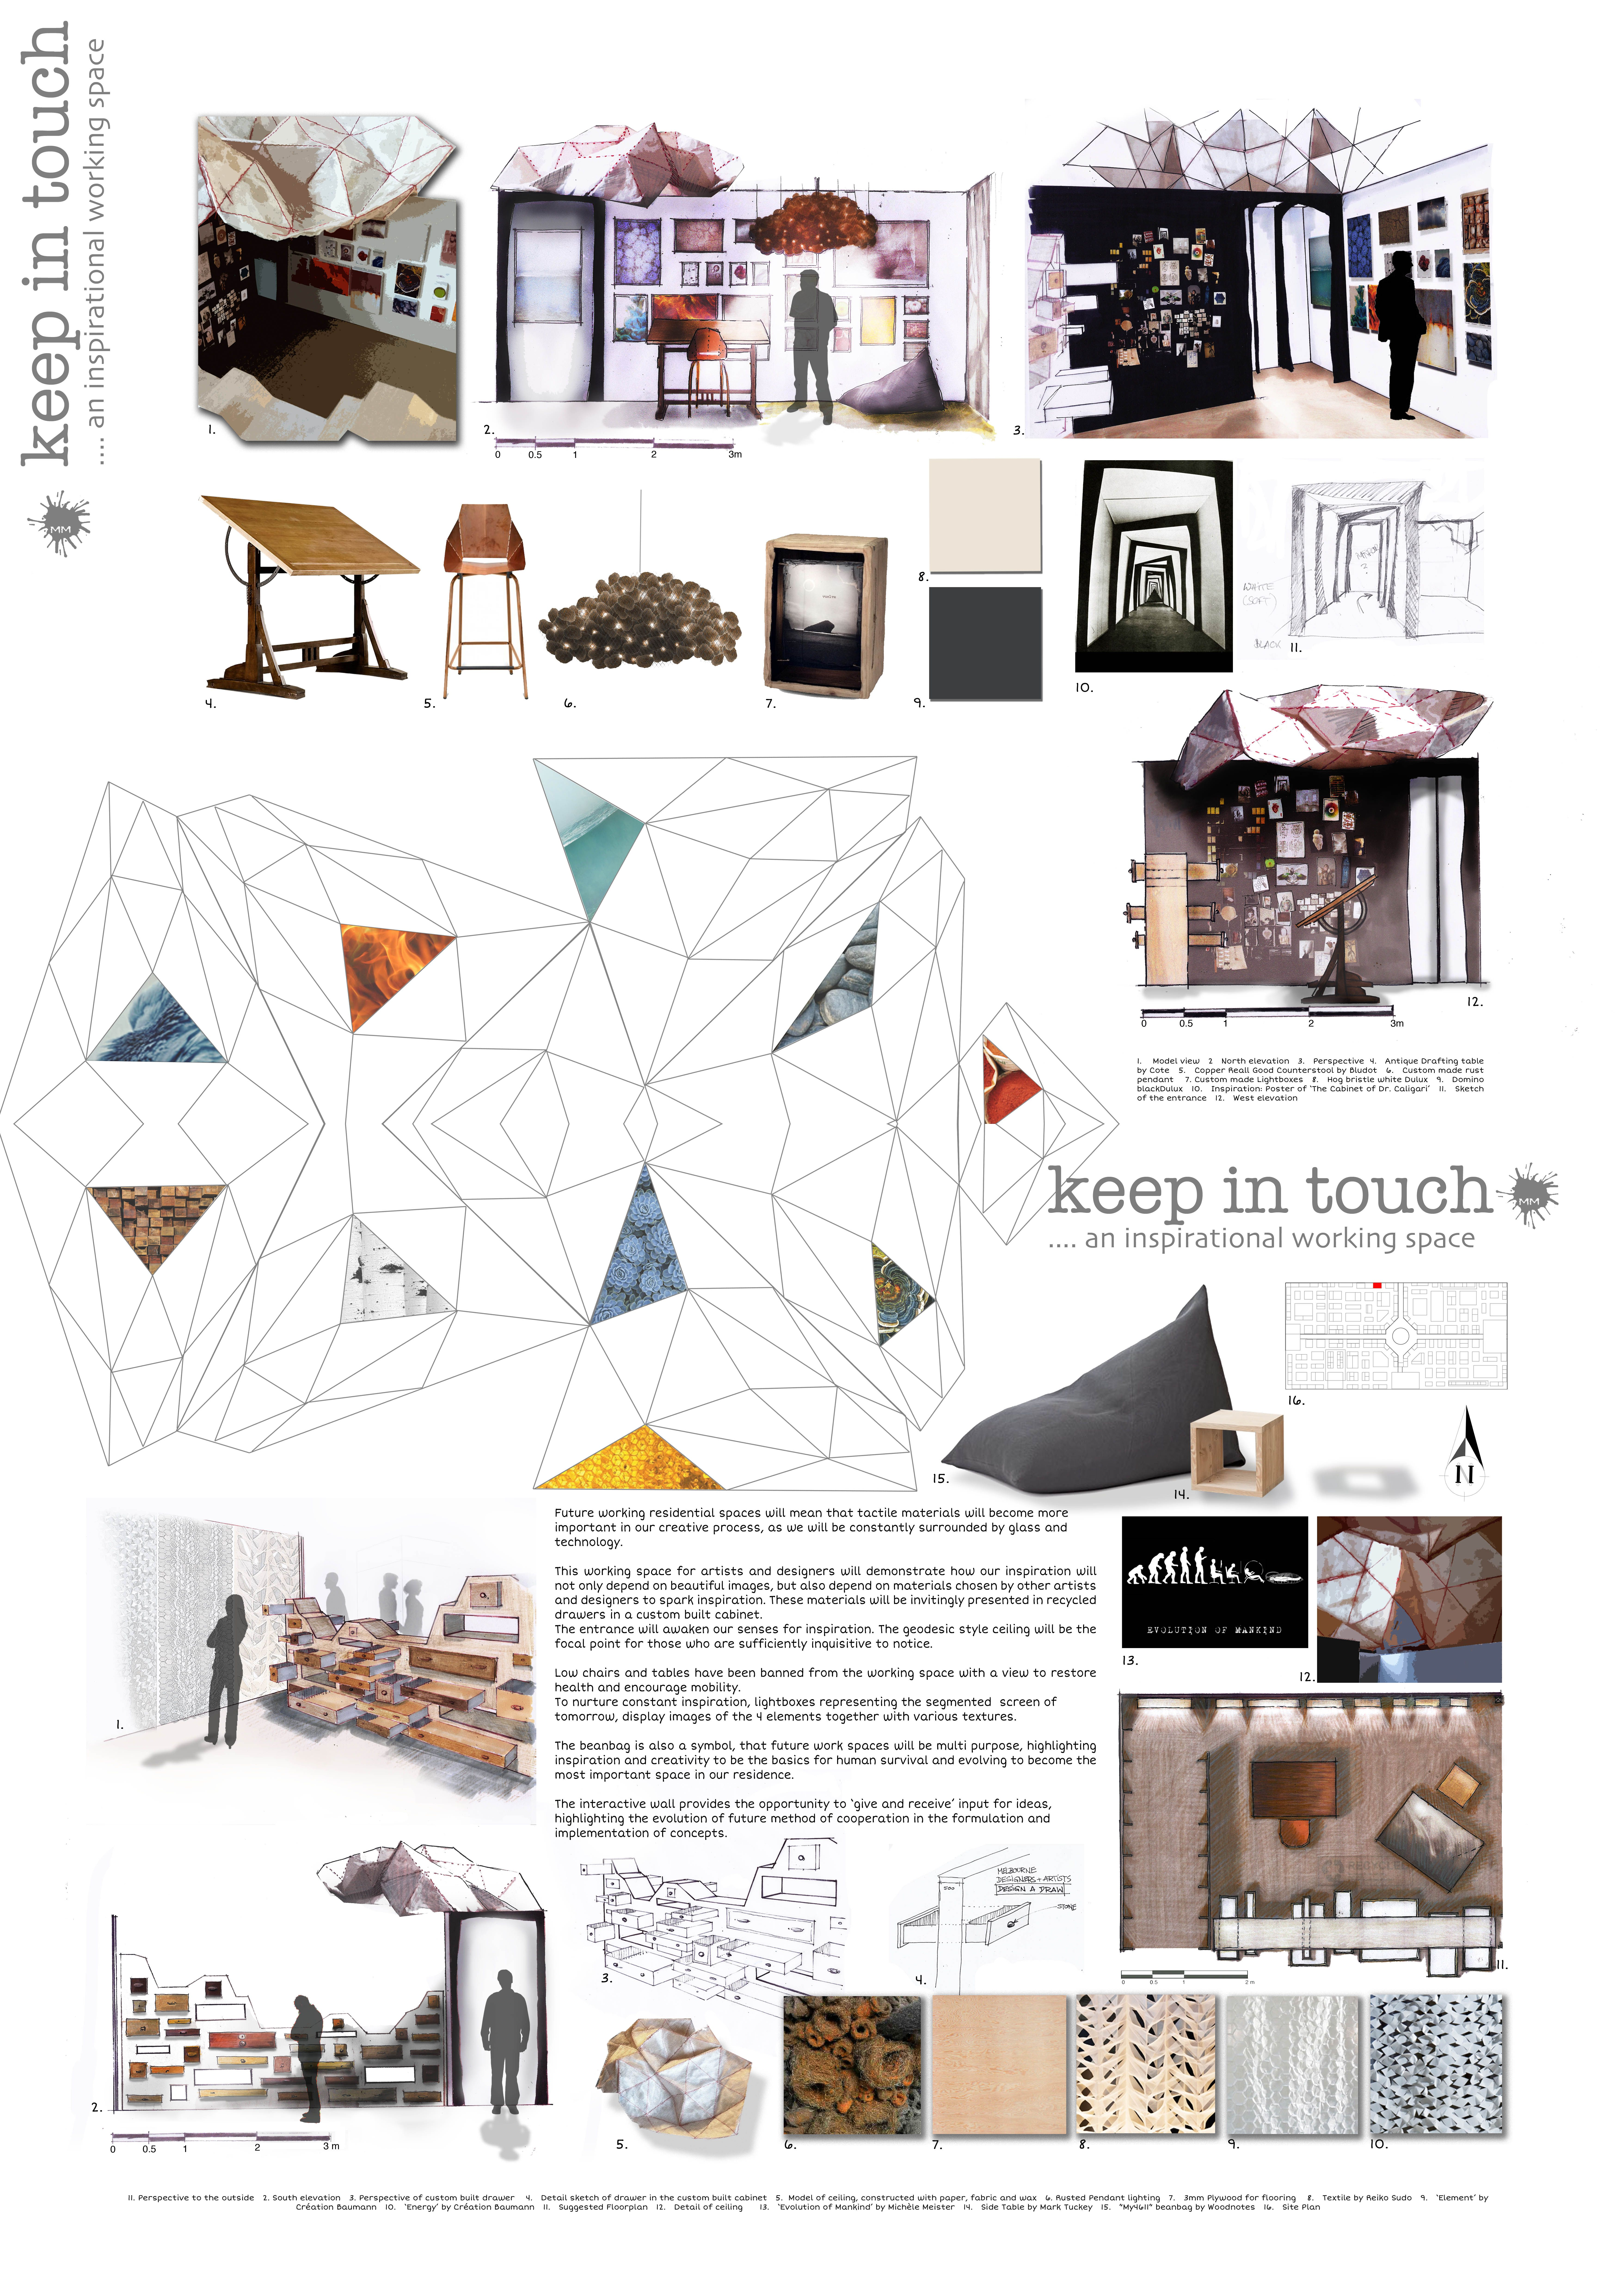 Admirable Keep In Touch Grand Design Room By Design Michele Meister Home Interior And Landscaping Elinuenasavecom